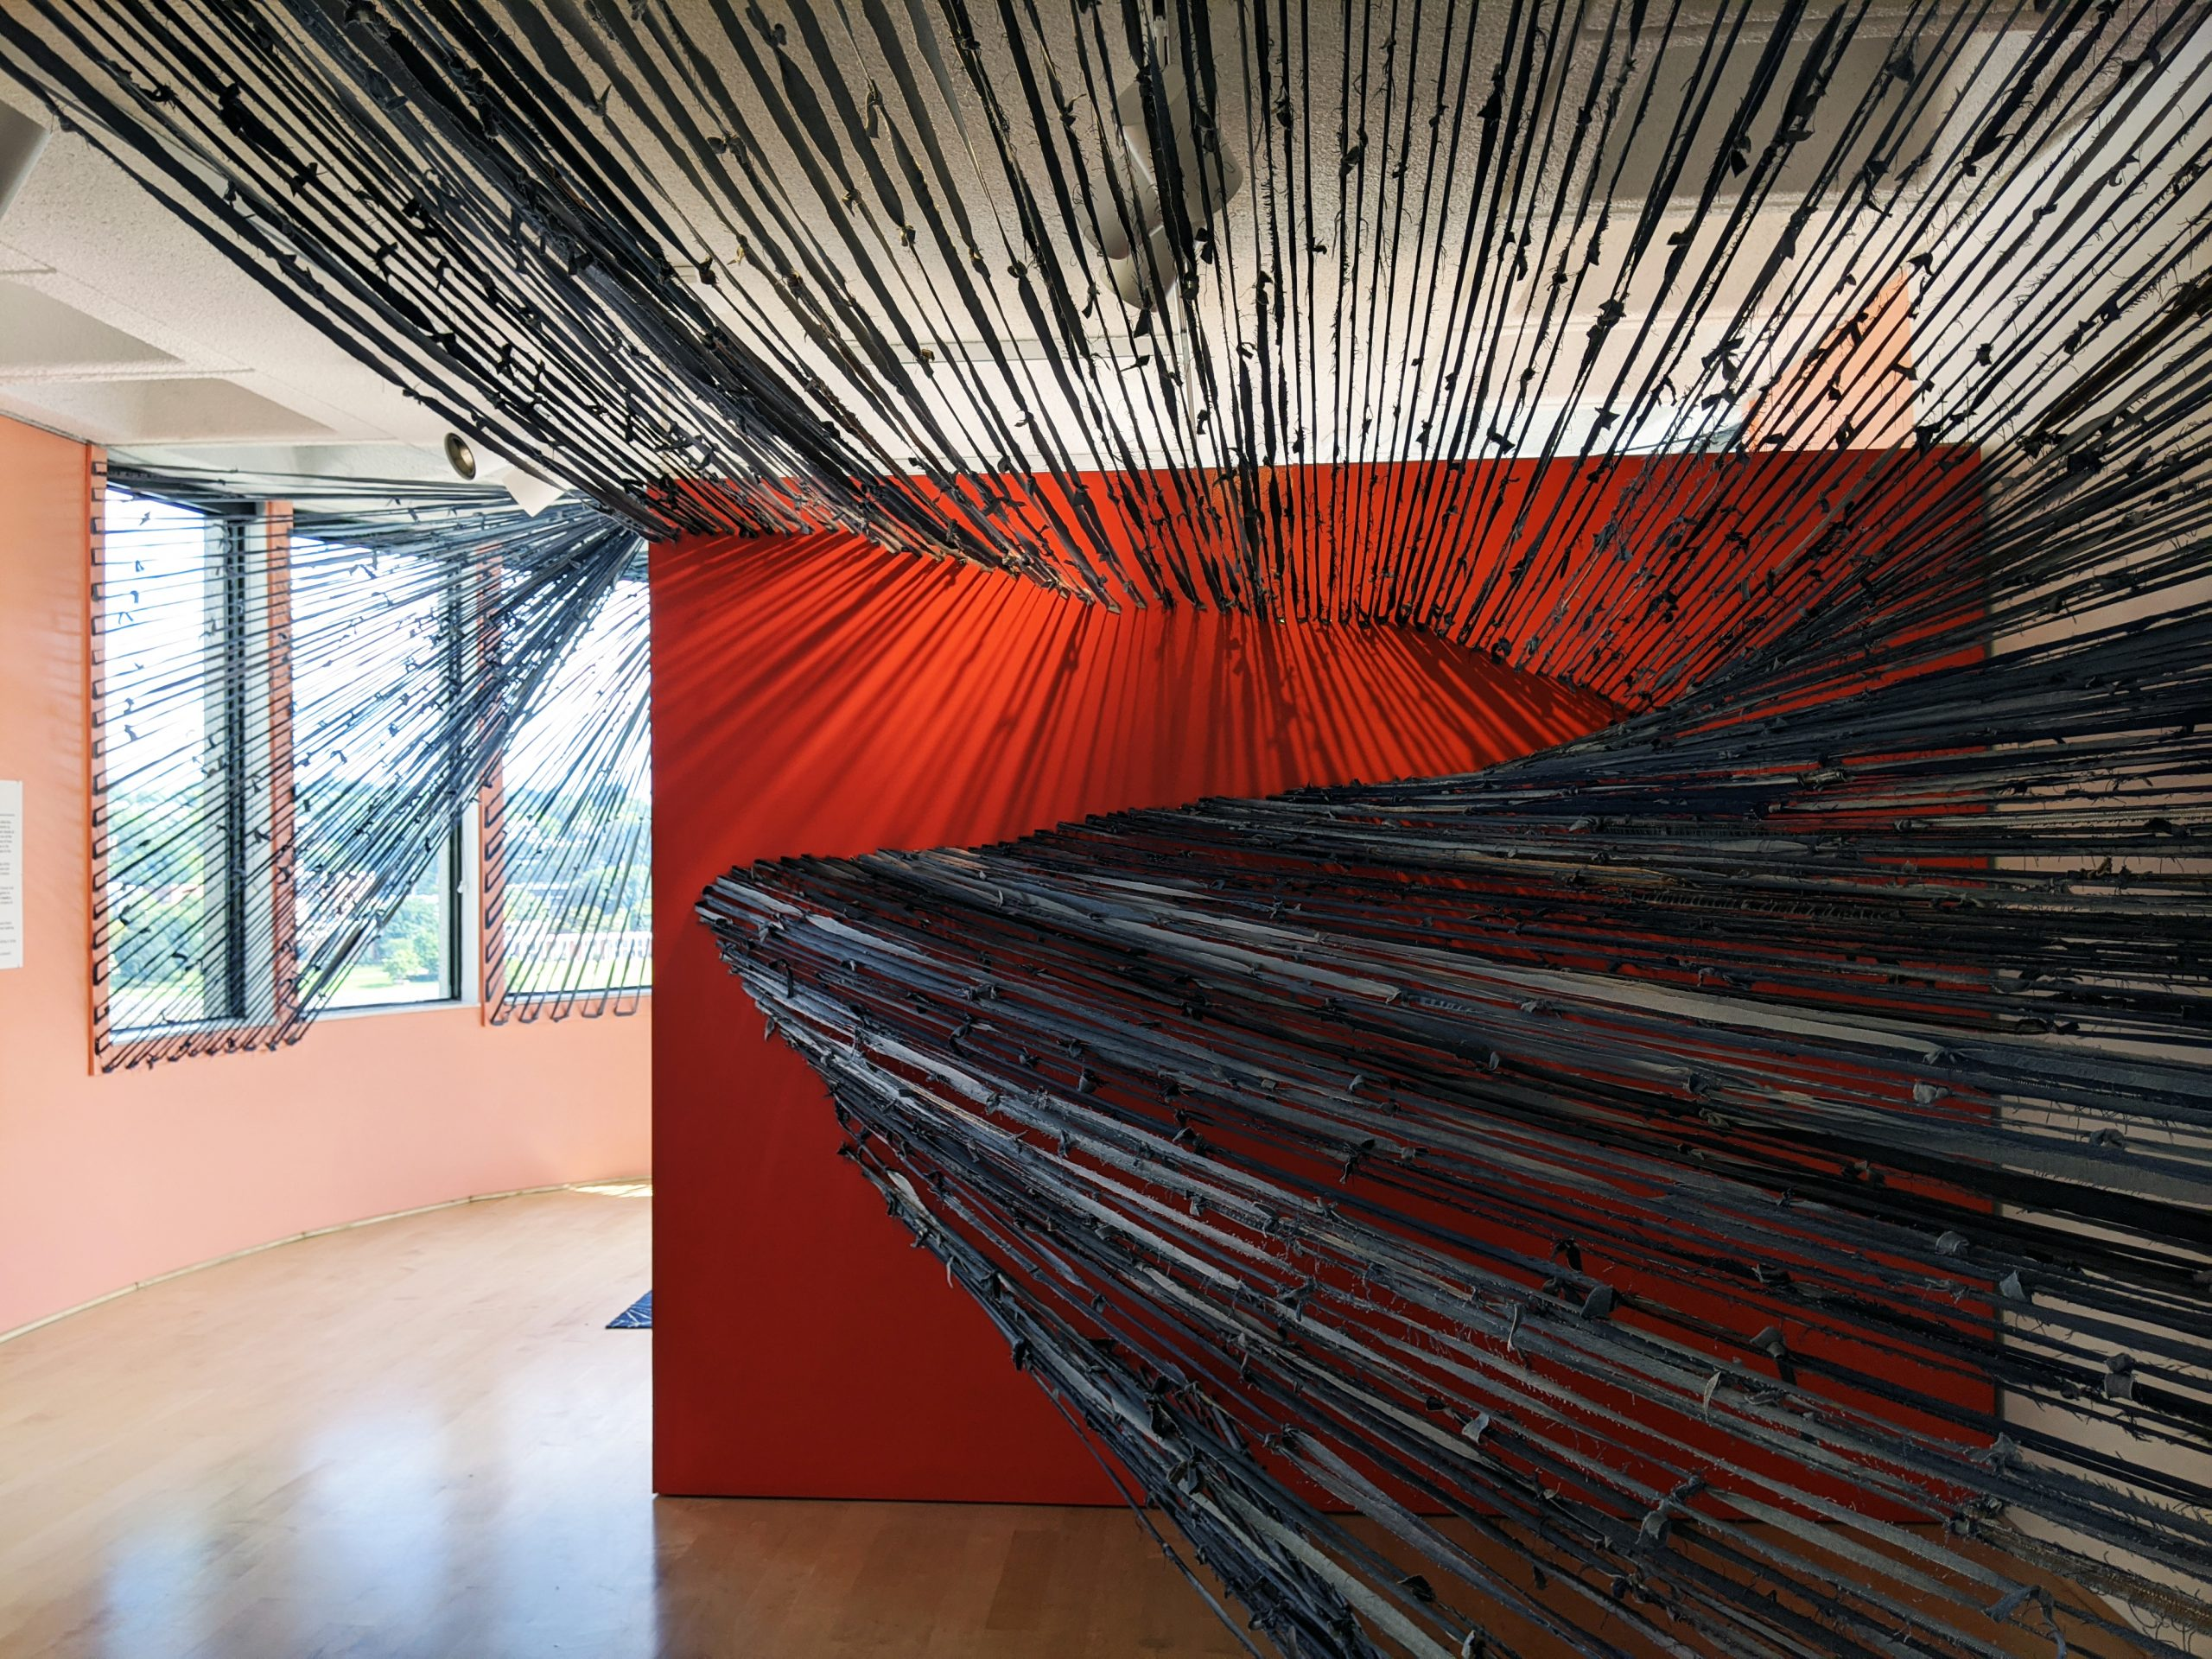 Strips of denim attached to two walls stretched across a room.